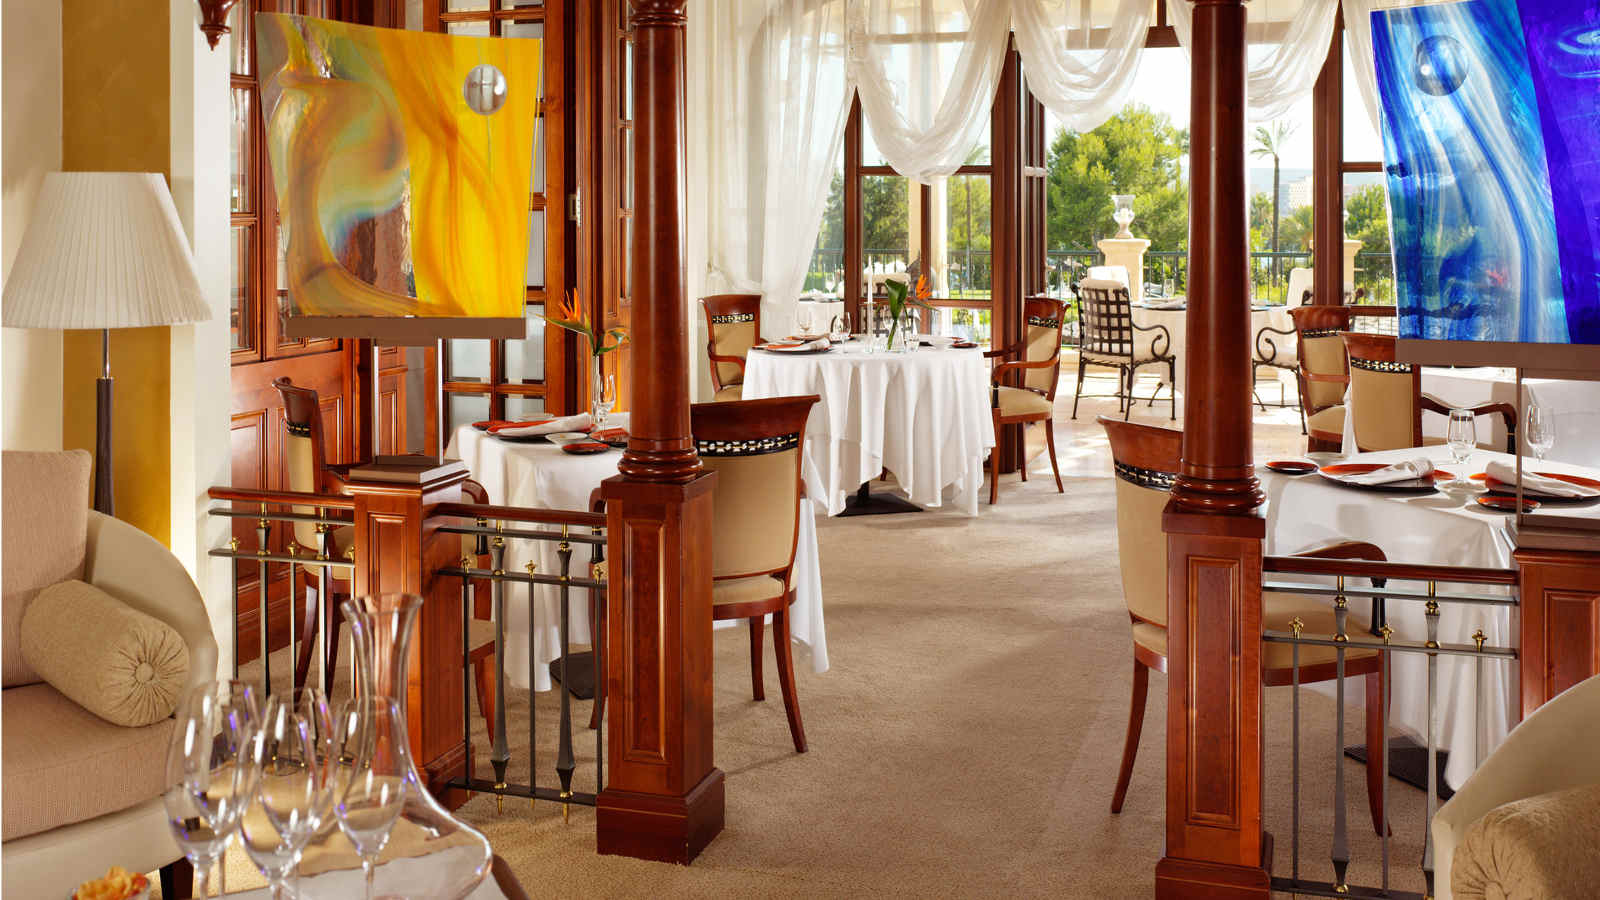 Restaurant Es Fum | The St. Regis Mardavall Mallorca Resort